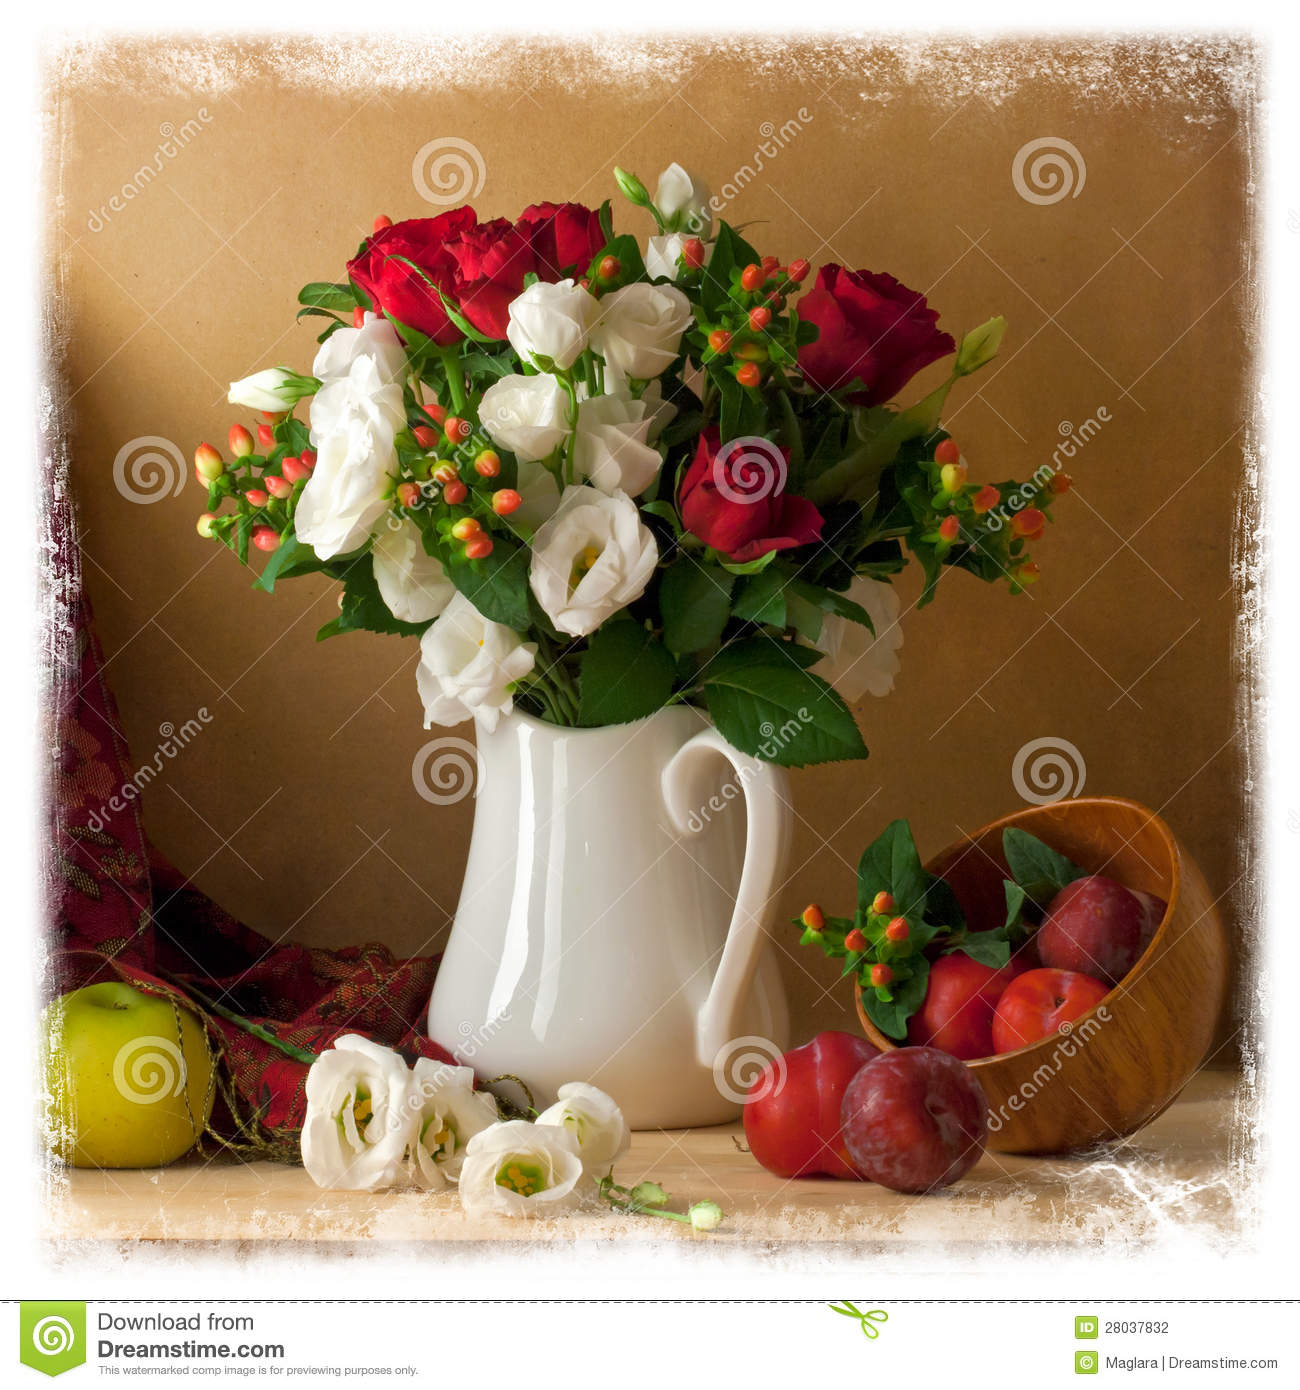 Beautiful flower bouquet with fruits stock photo image of card beautiful flower bouquet with fruits izmirmasajfo